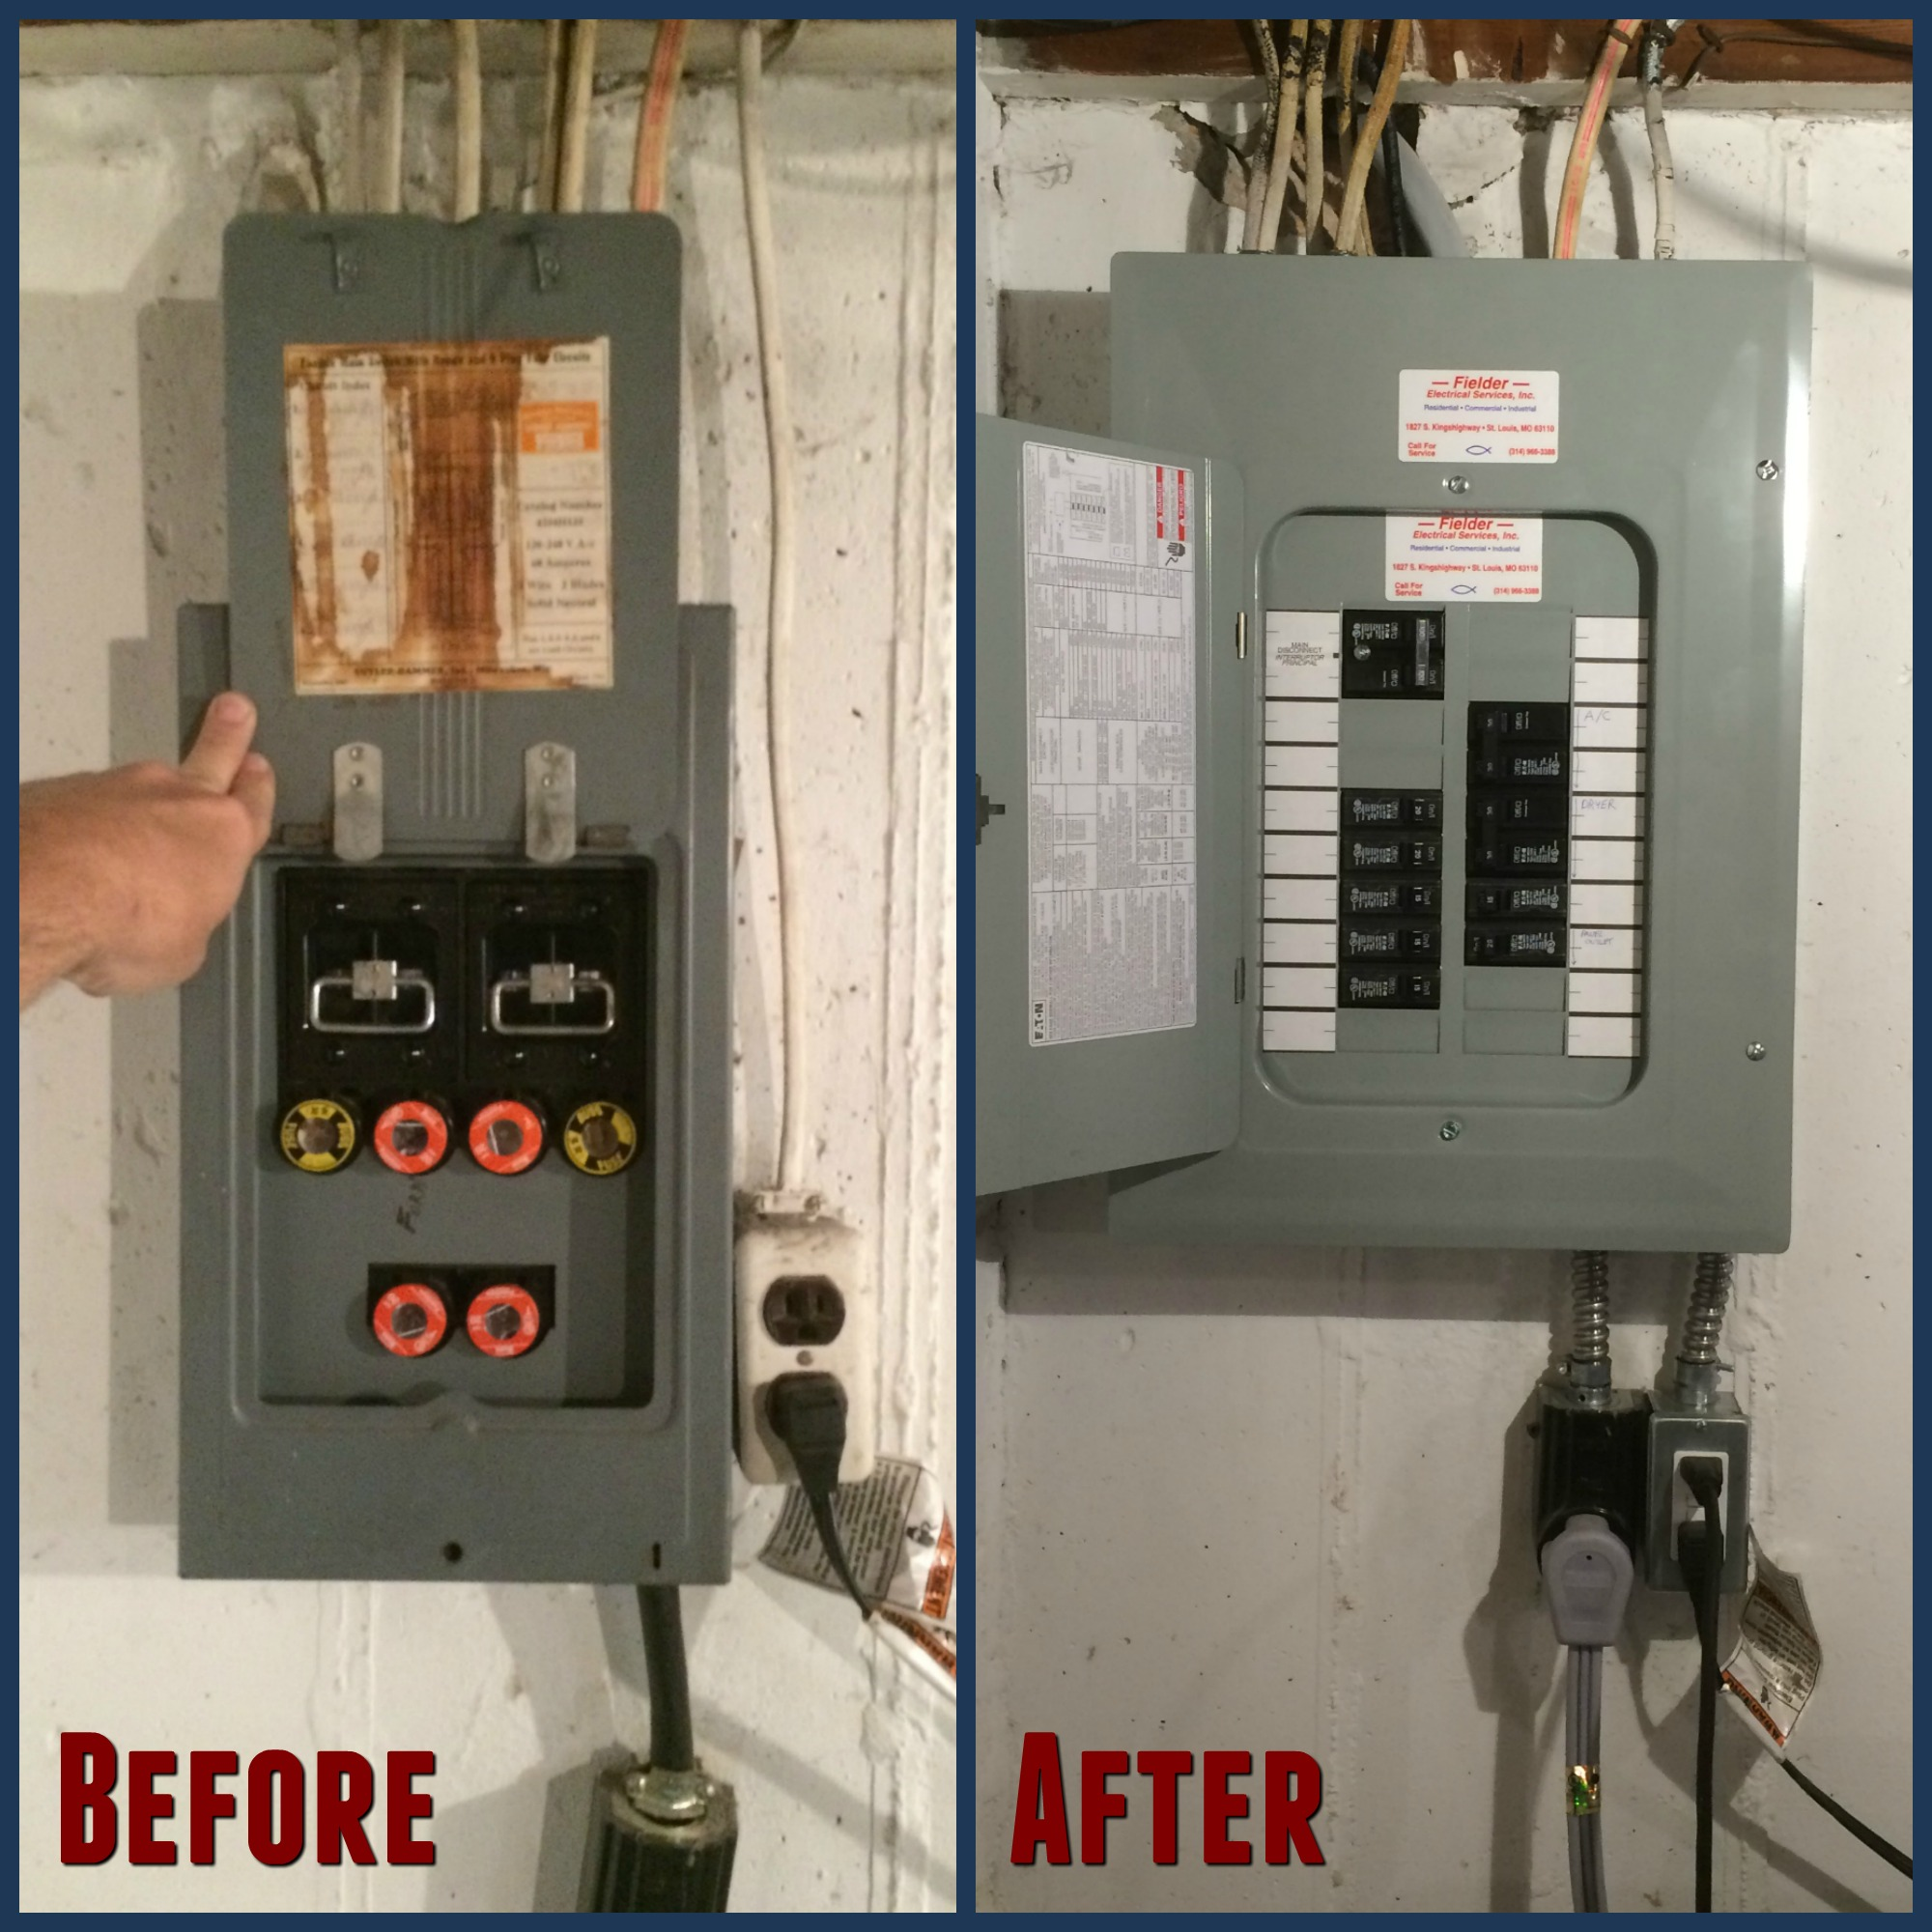 Fuse Box Home Insurance - Wiring Diagram Box Electrical Wiring Diagrams Fuse Box on electrical dimmer switch wiring, circuit box wiring, electrical fuse boxes, electrical relay wiring, power meter box wiring, electrical service panel diagram, electrical disconnect switch wiring,